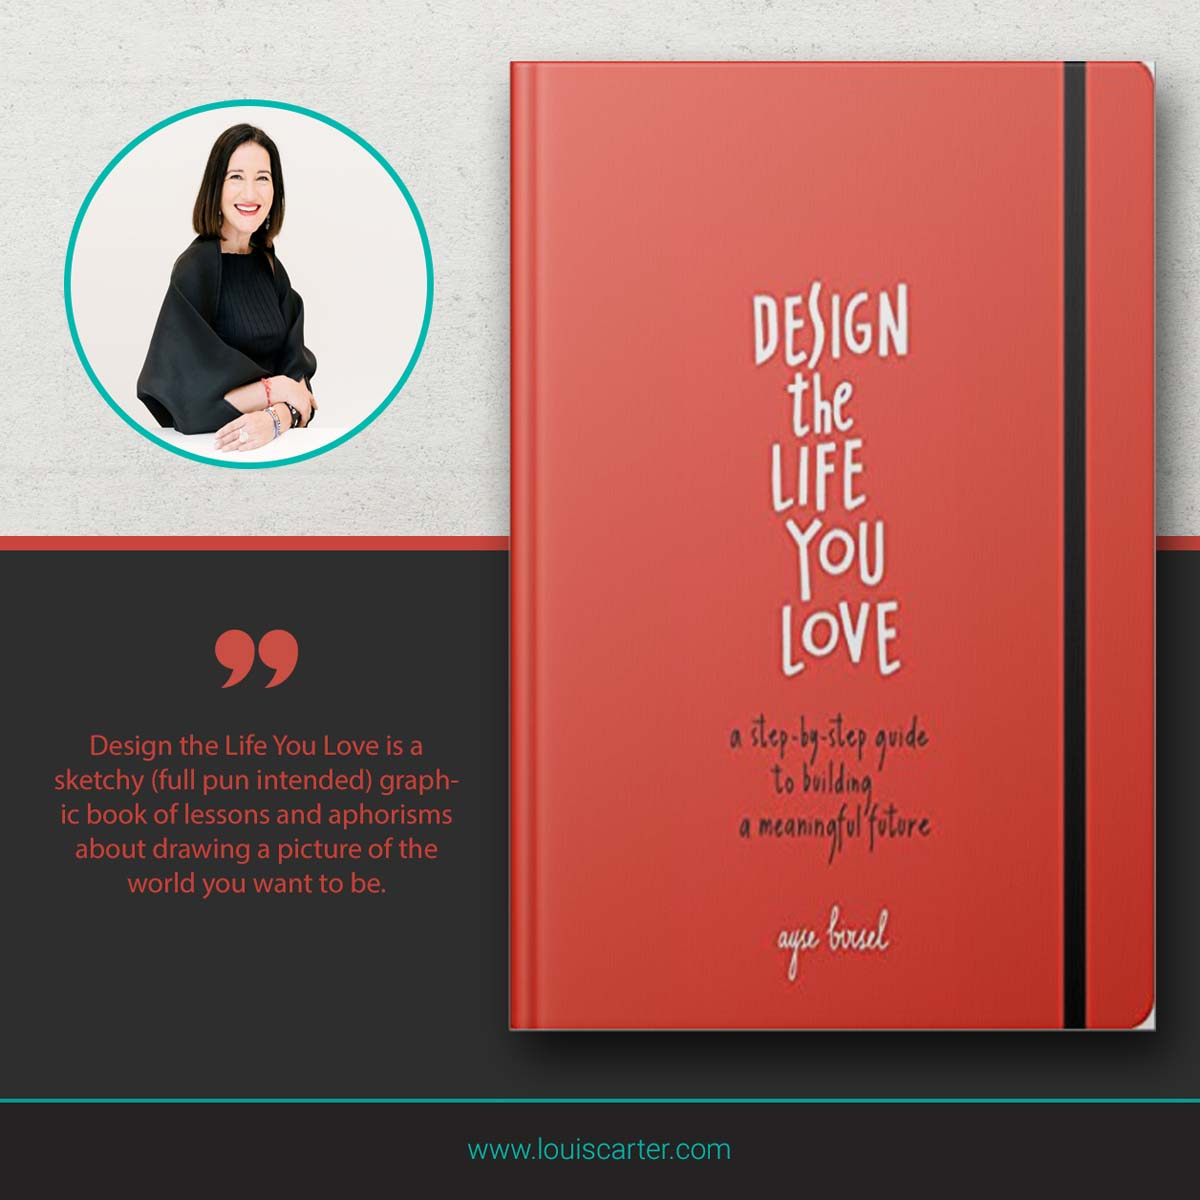 Image of Design the Life You Love By Ayse Birsel leadership book.